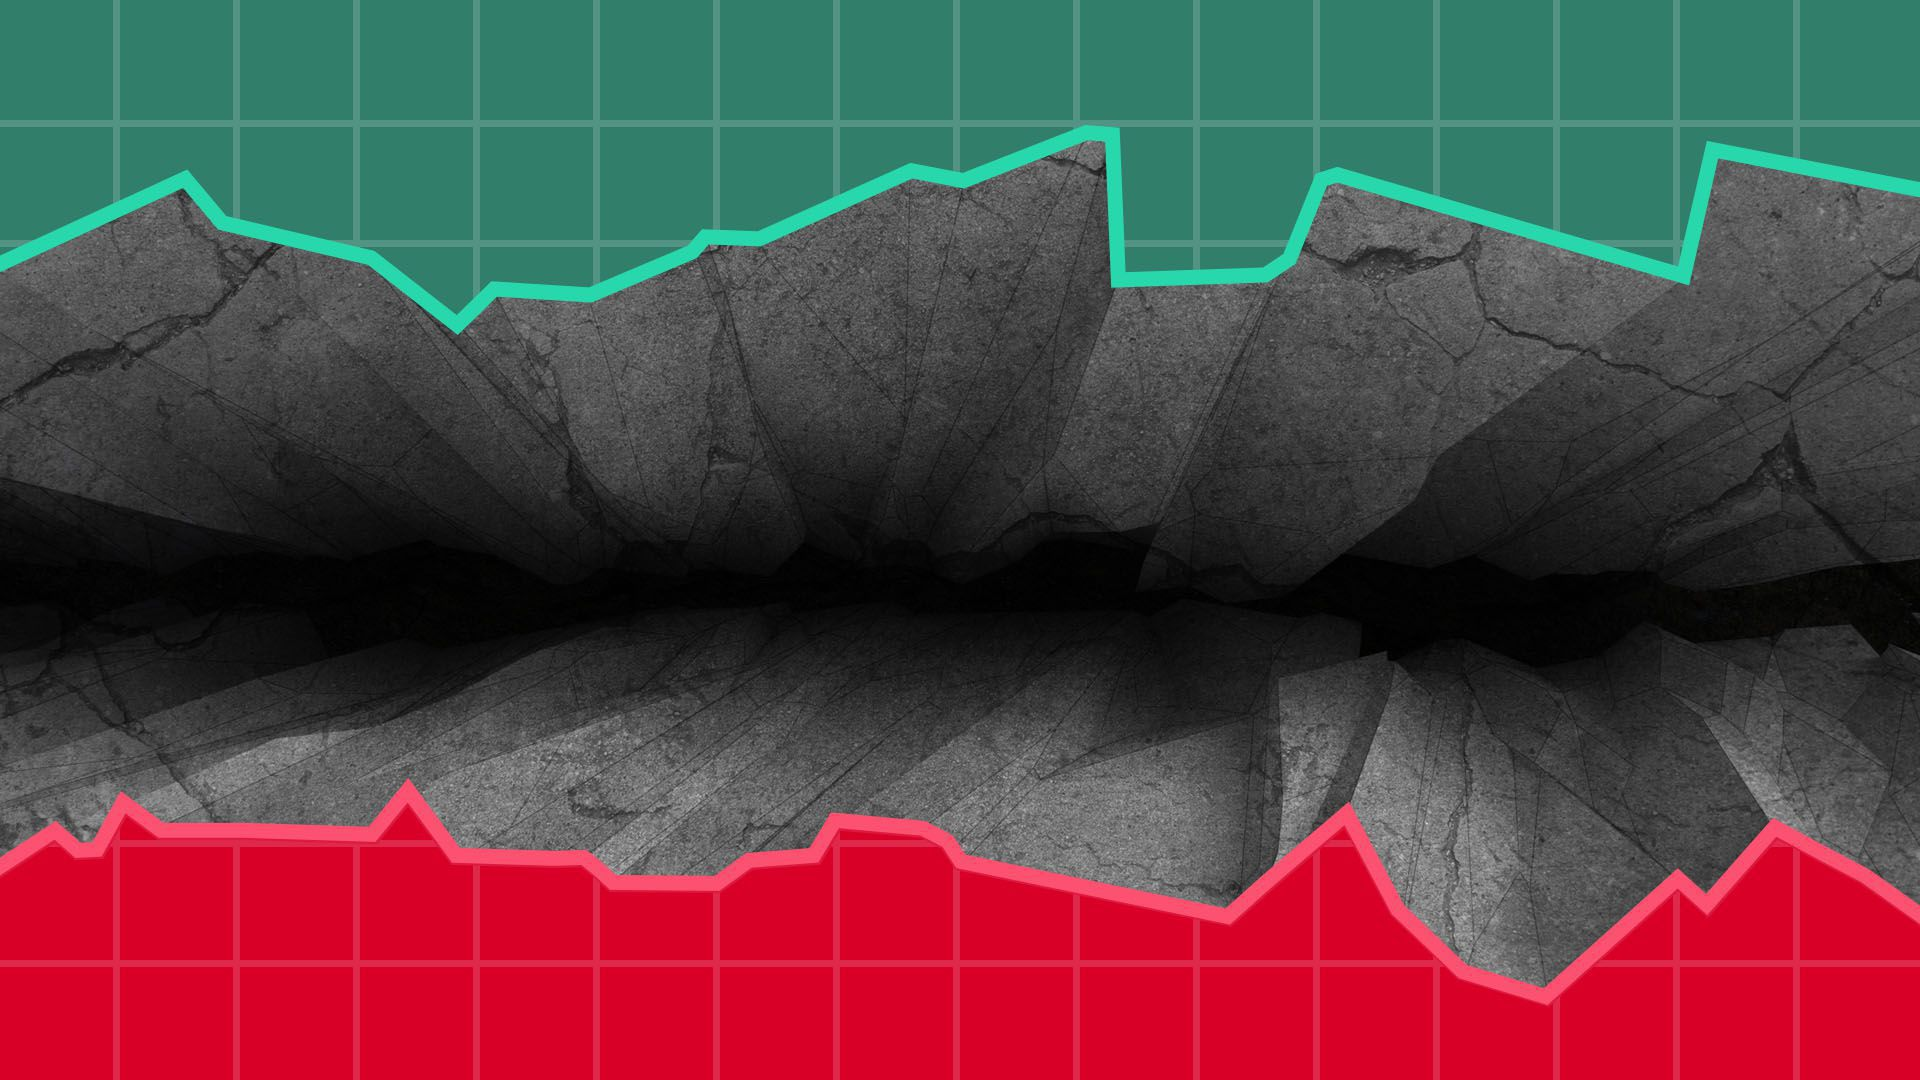 Illustration of market chart with chasm in the middle